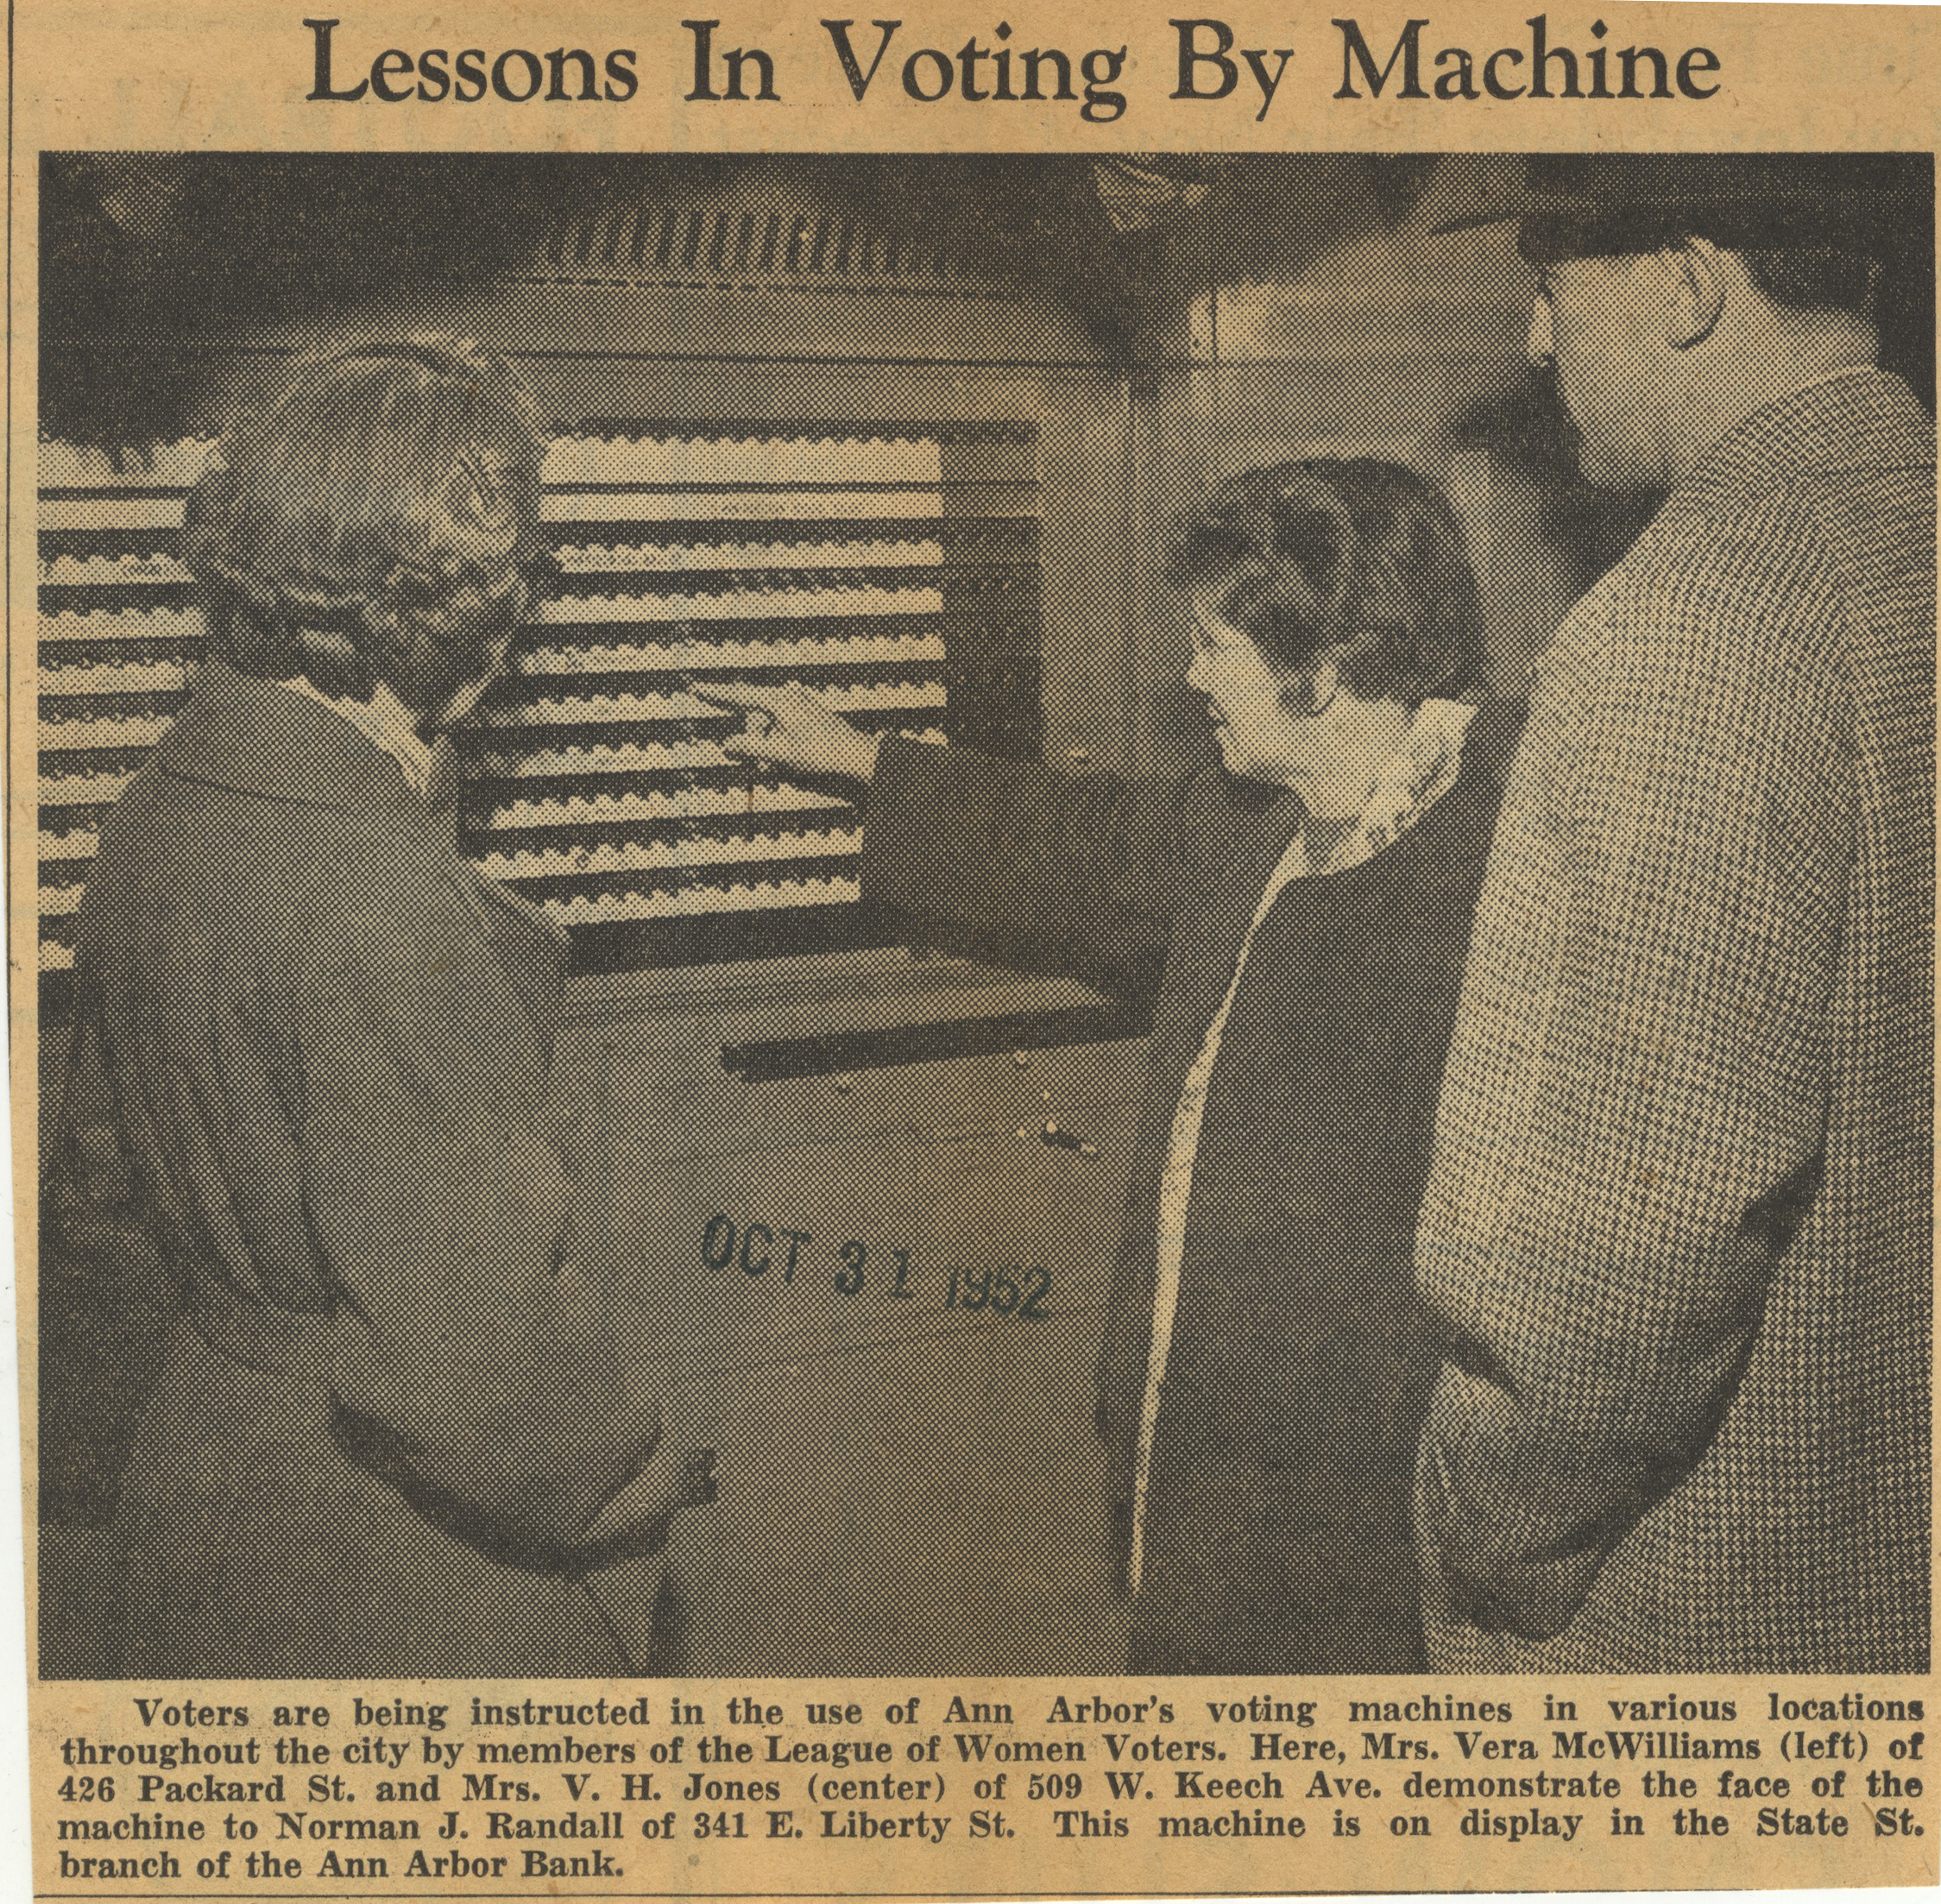 Lessons In Voting By Machine image